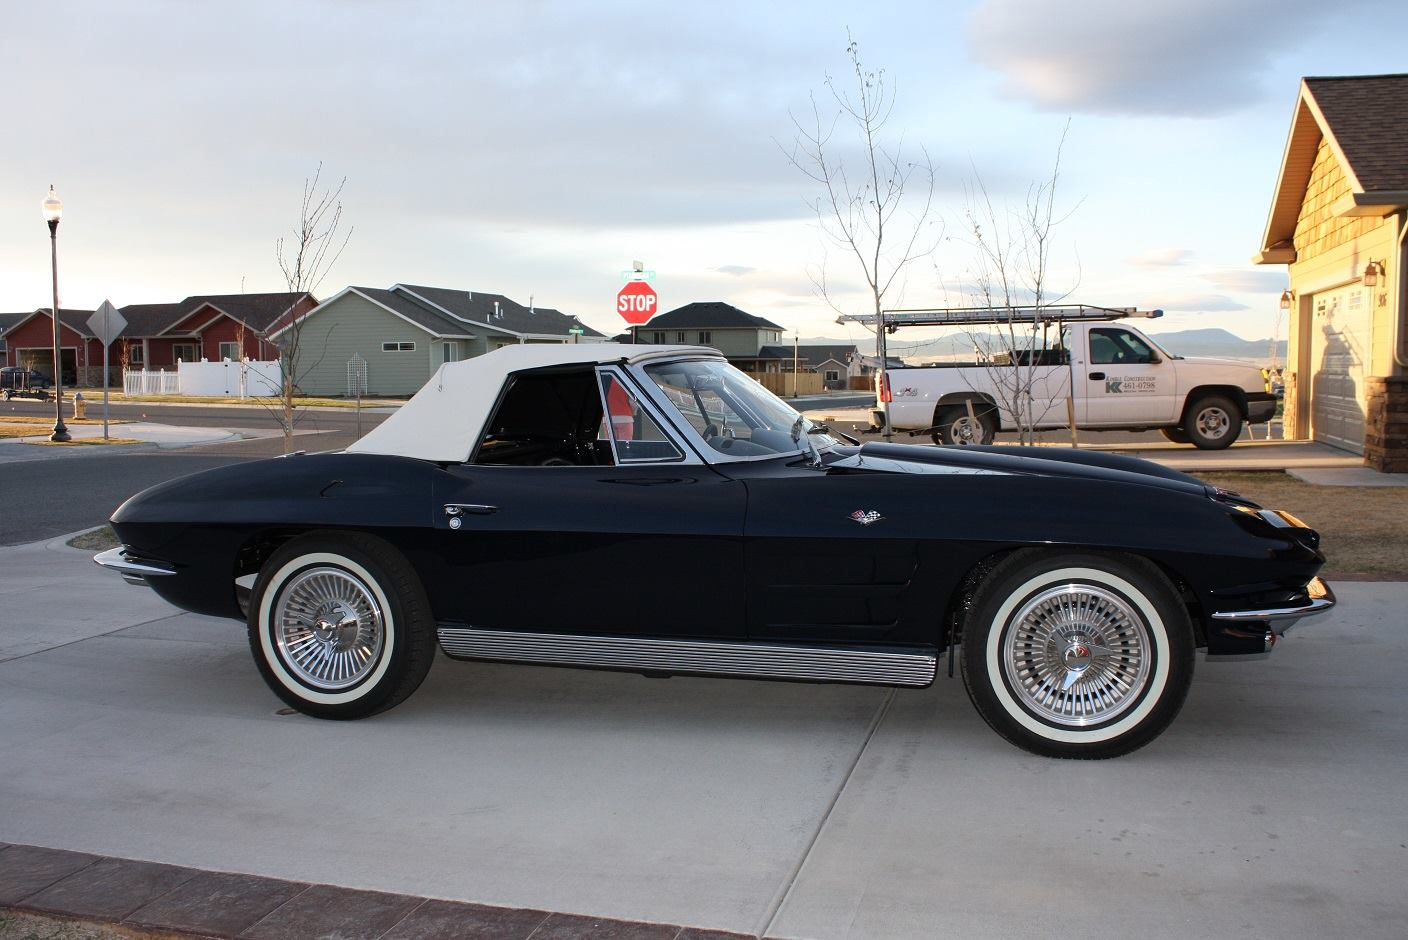 [FOUND] Daytona Blue 1963 Corvette Convertible Stolen in Helena, Montana